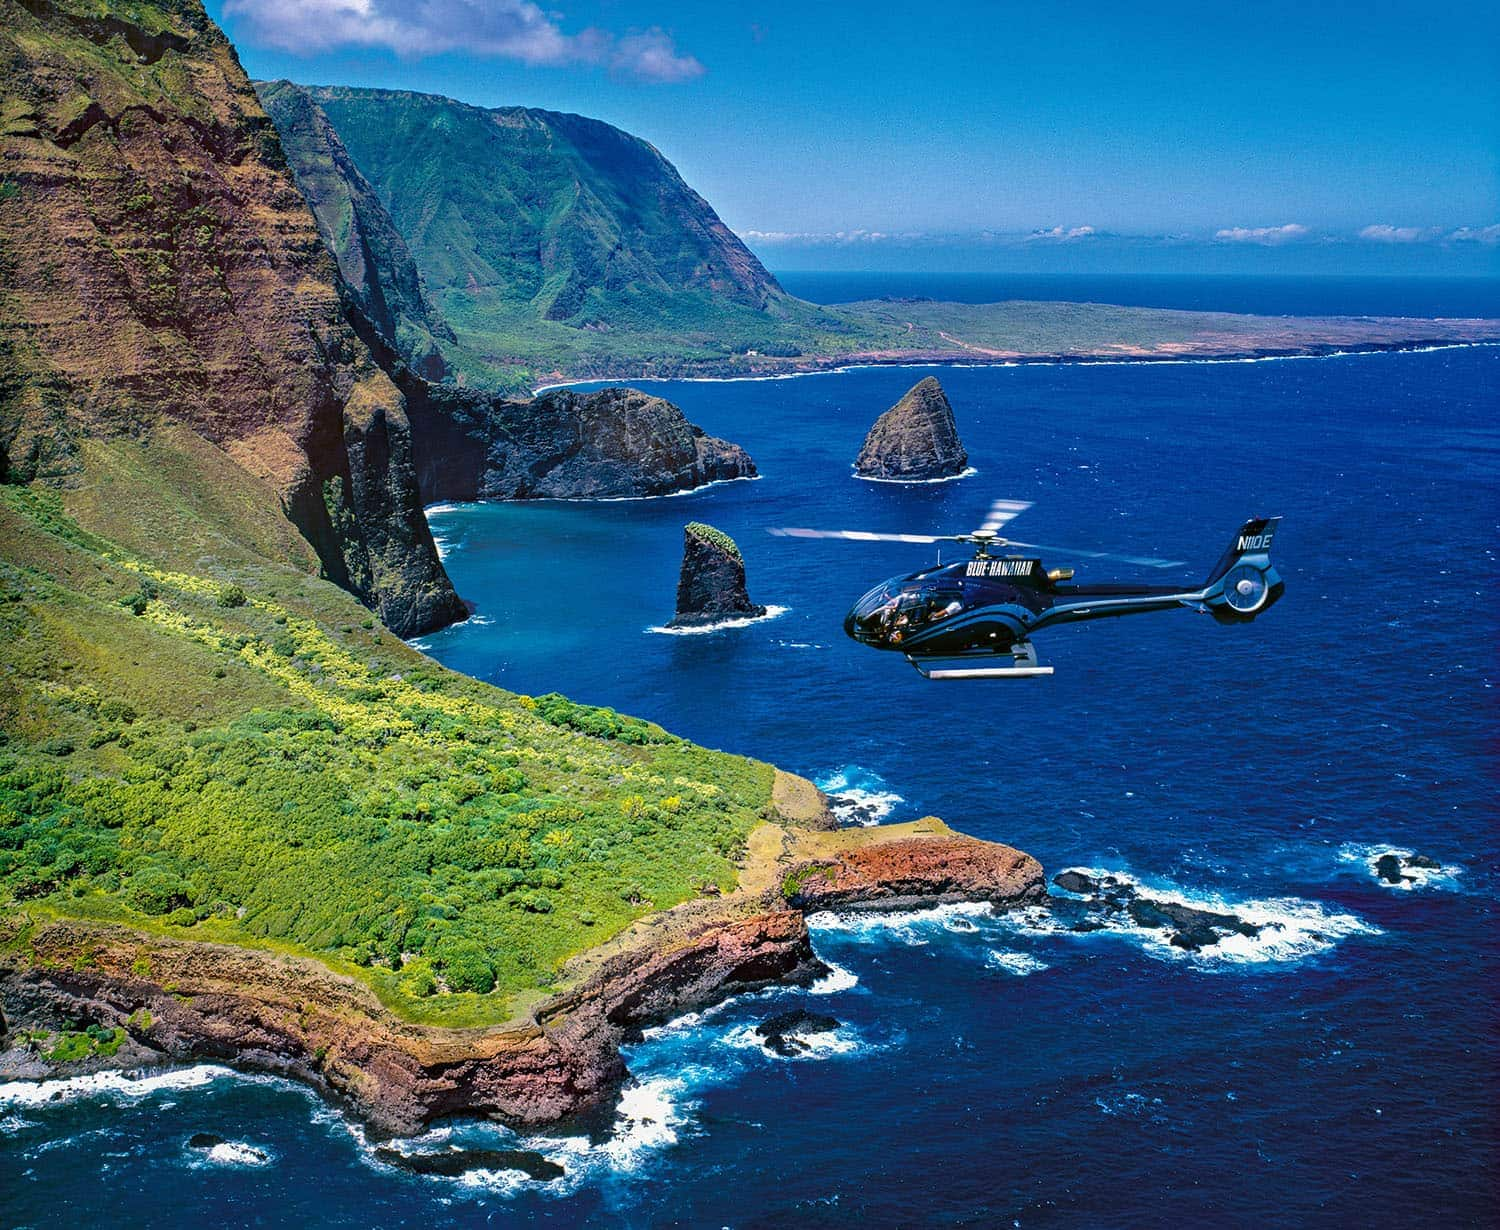 Fly over the island of Maui and appreciate its beauty on a helicopter ride.